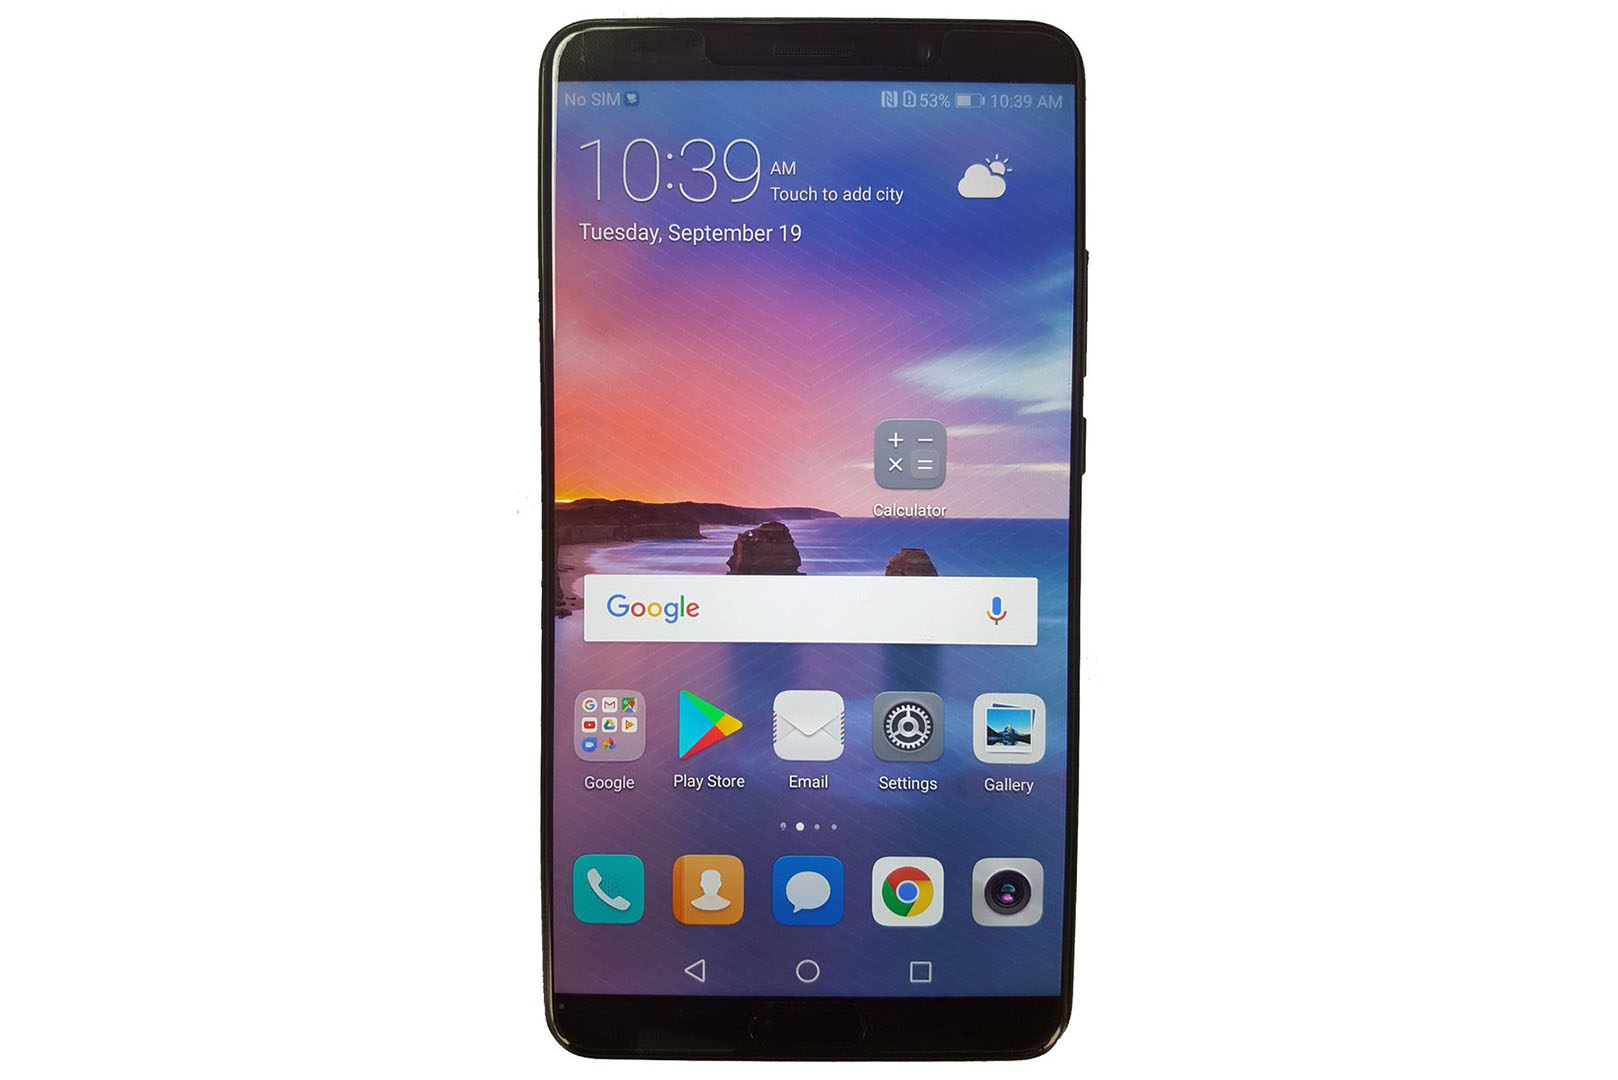 huawei mate 10 pro et lite ce qu 39 on sait des futures phablettes frandroid. Black Bedroom Furniture Sets. Home Design Ideas